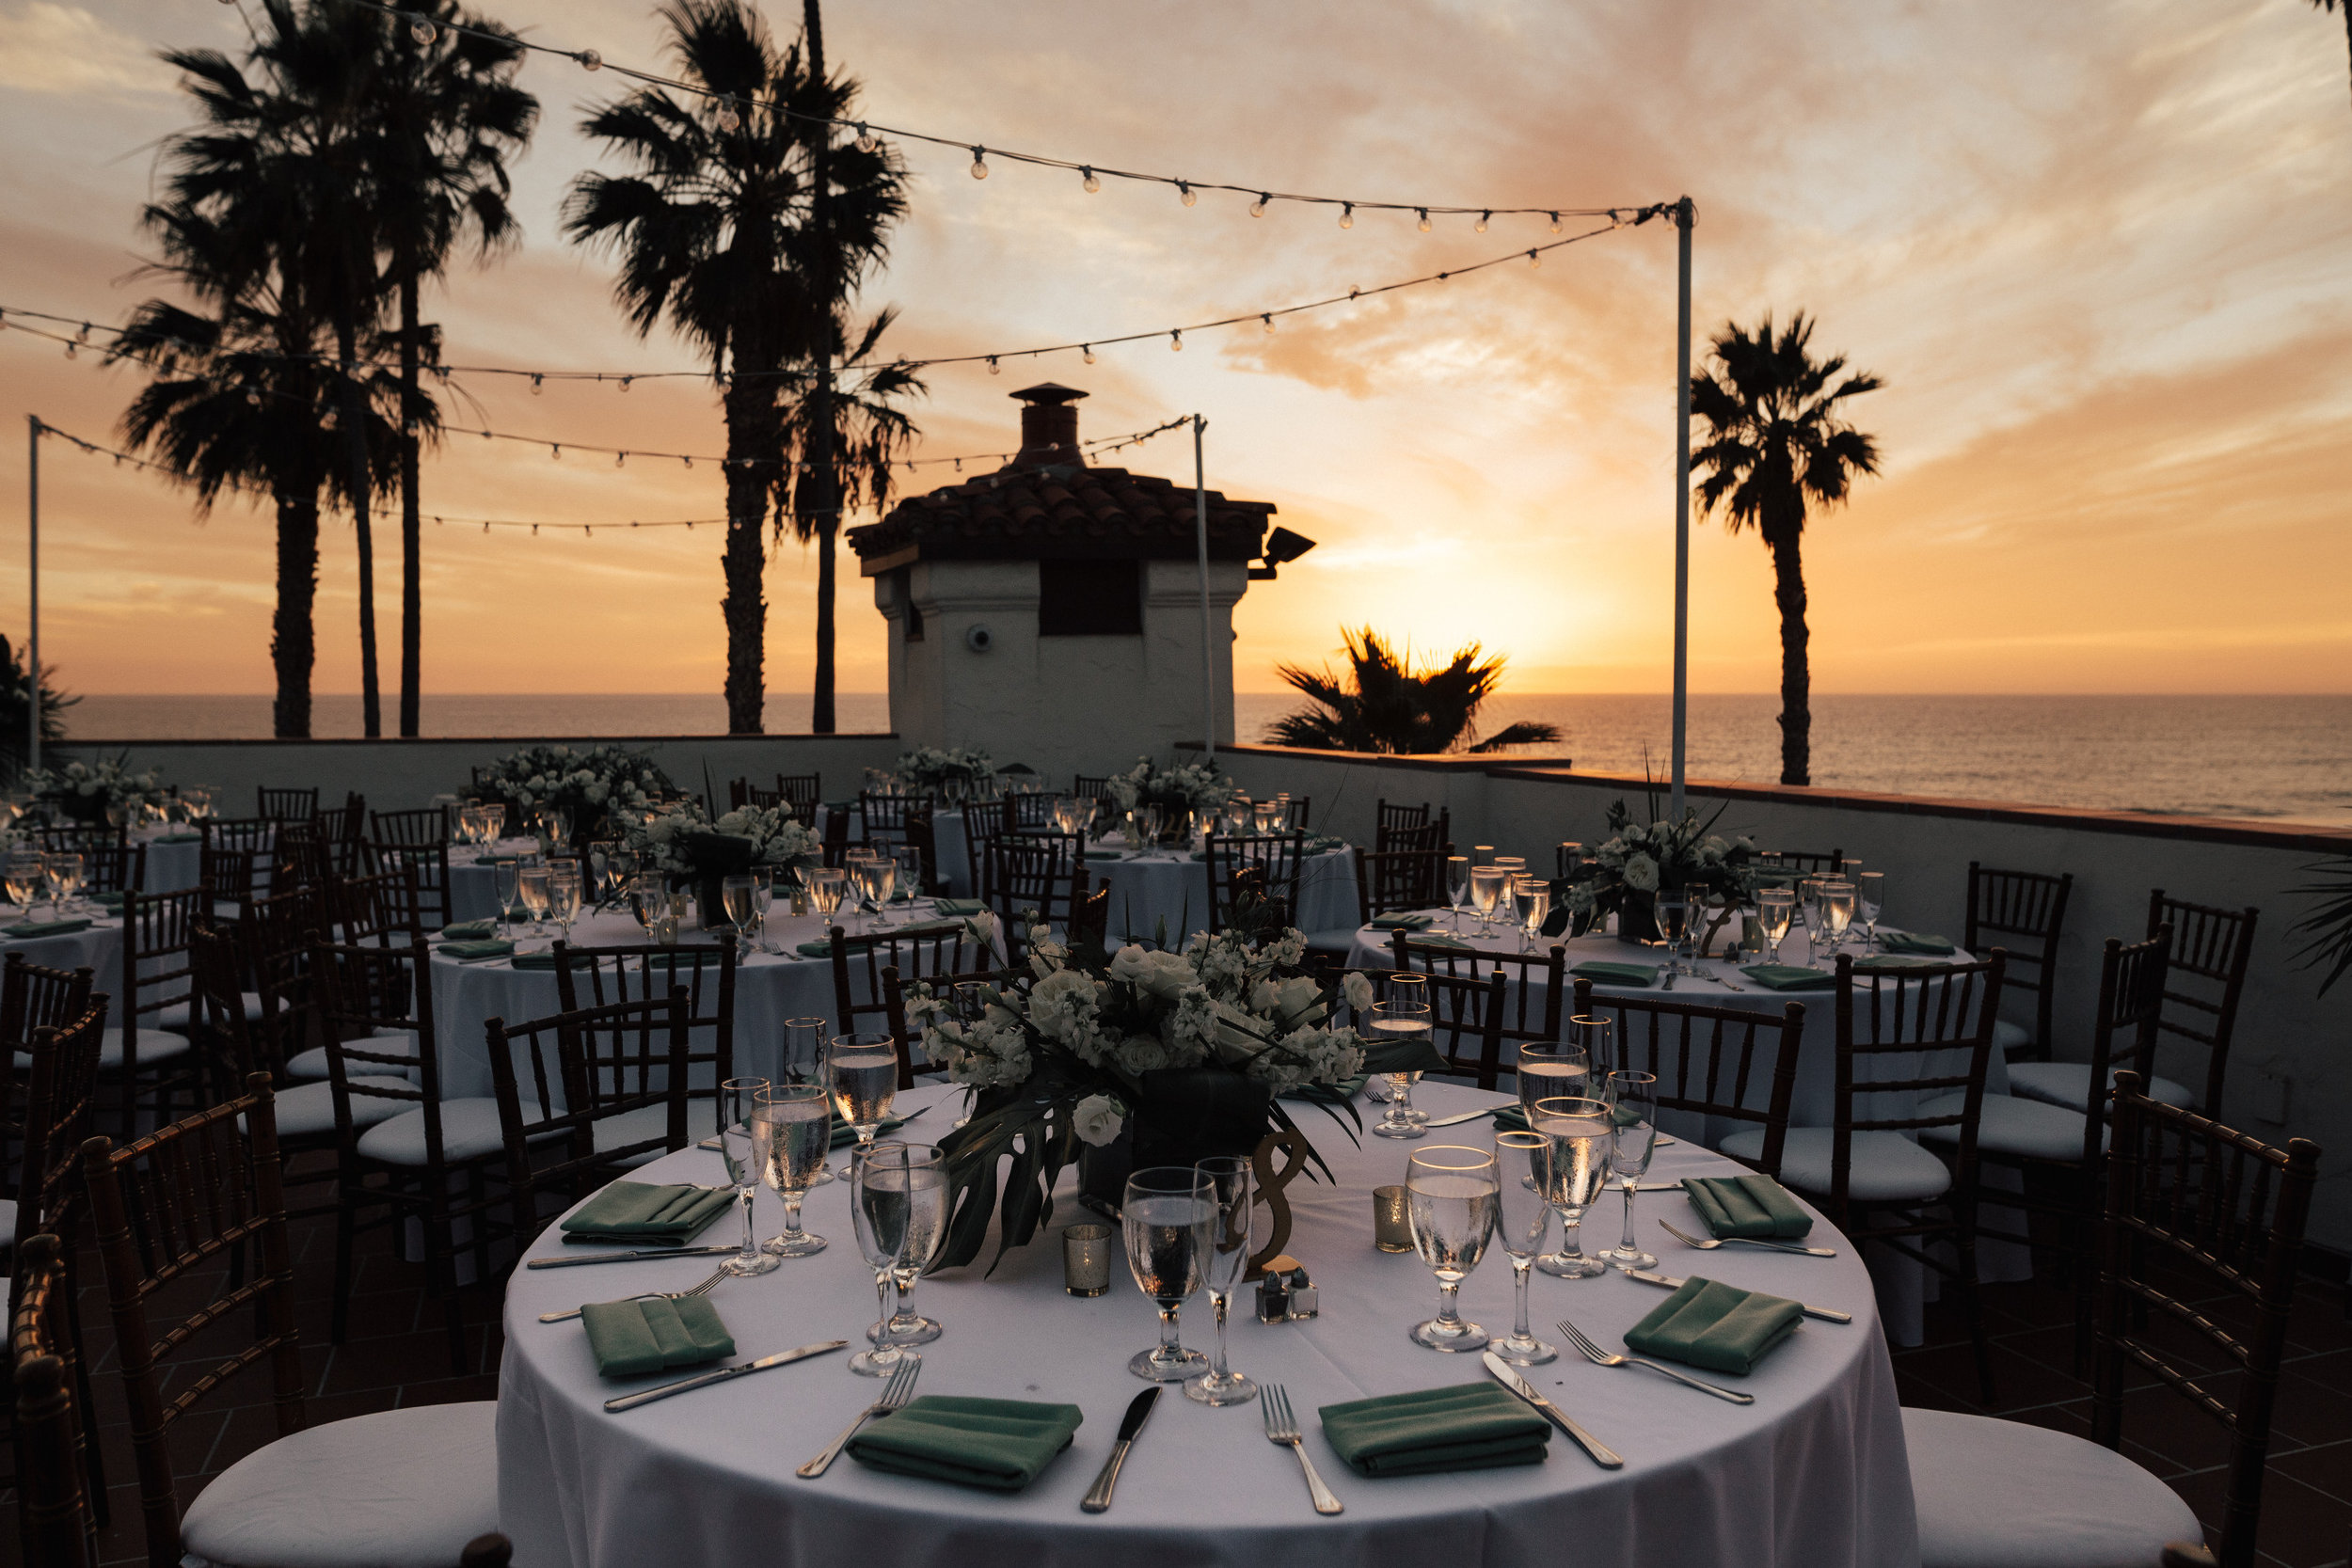 Ole Hanson Beach Club Wedding - Orange County Wedding Venue - The Overwhelmed Bride Wedding Blog